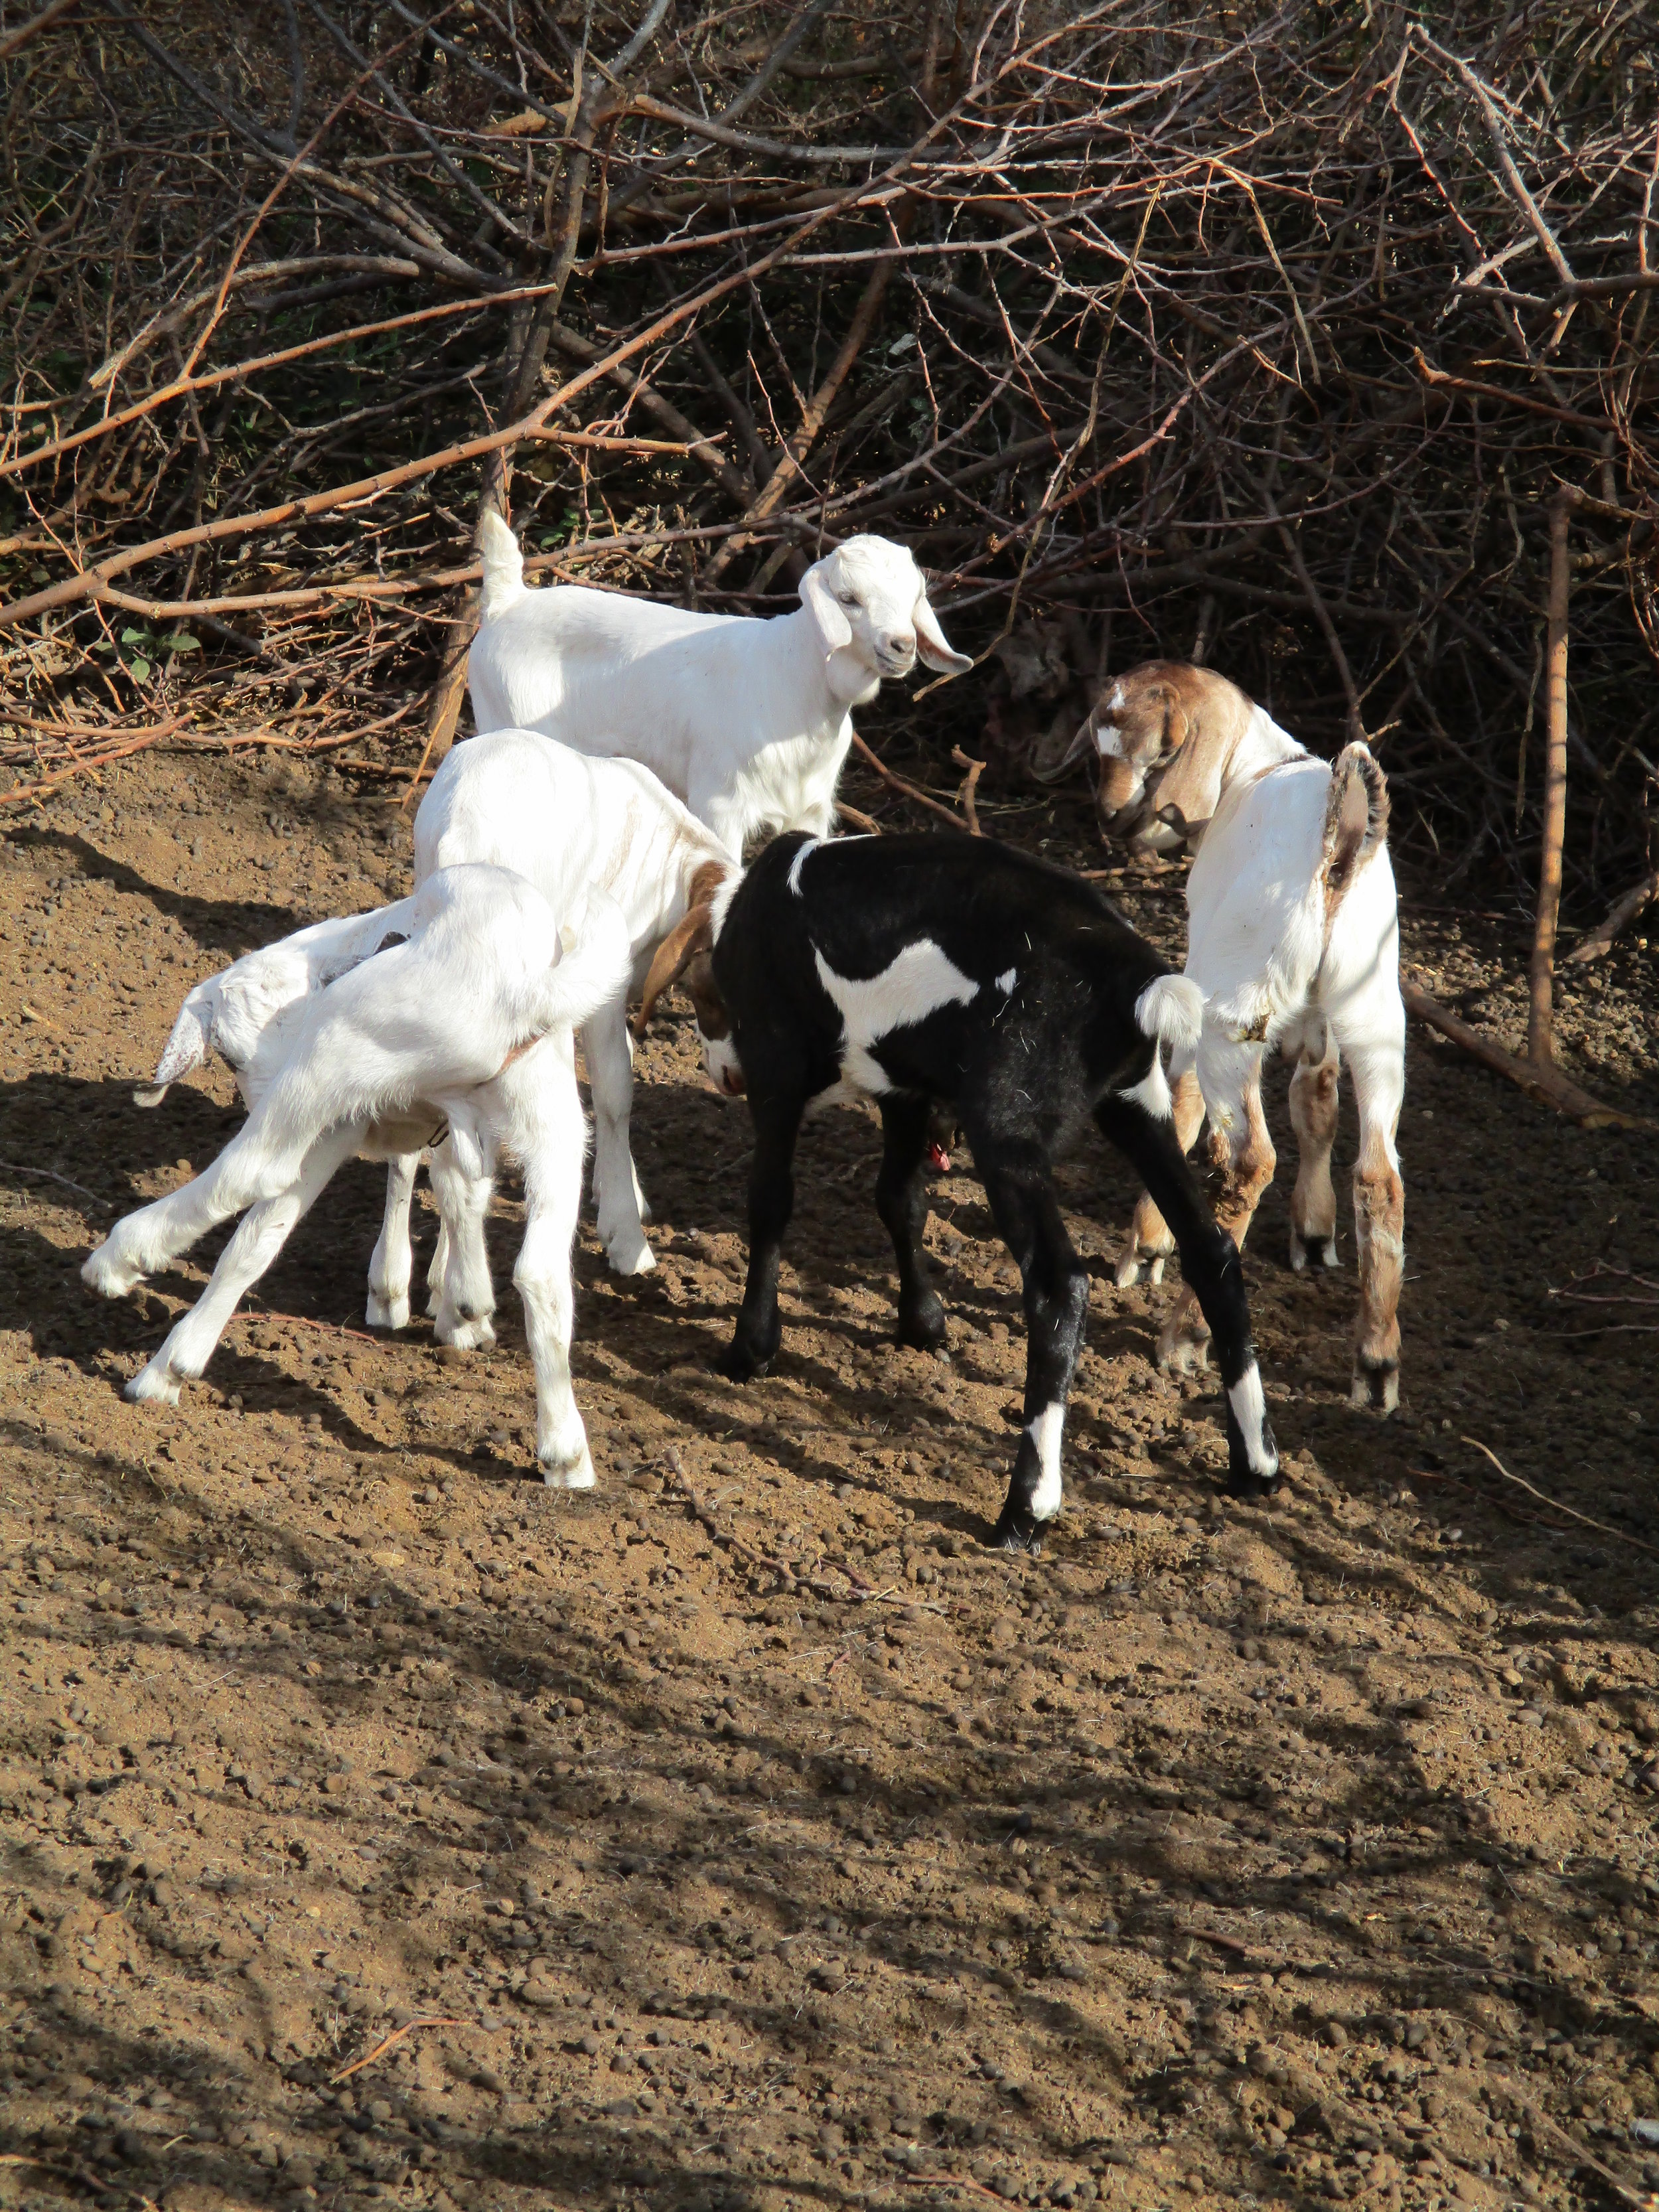 Goats (but these are not the ones taken from Sankau!)